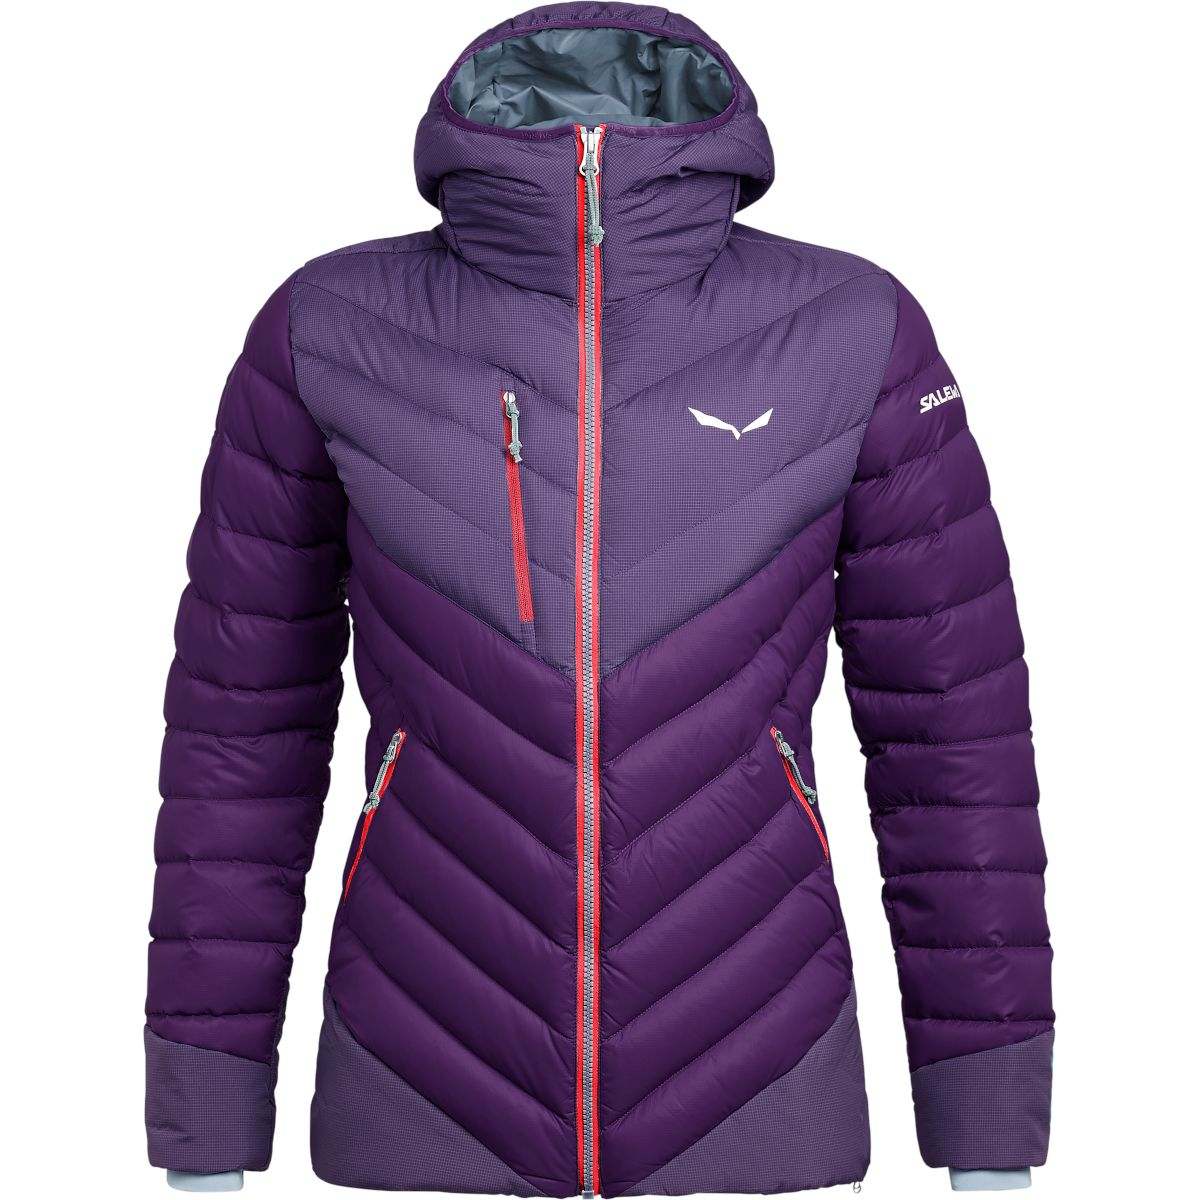 Куртка Salewa Ortles Medium 2 Down Wms Jacket (2019)